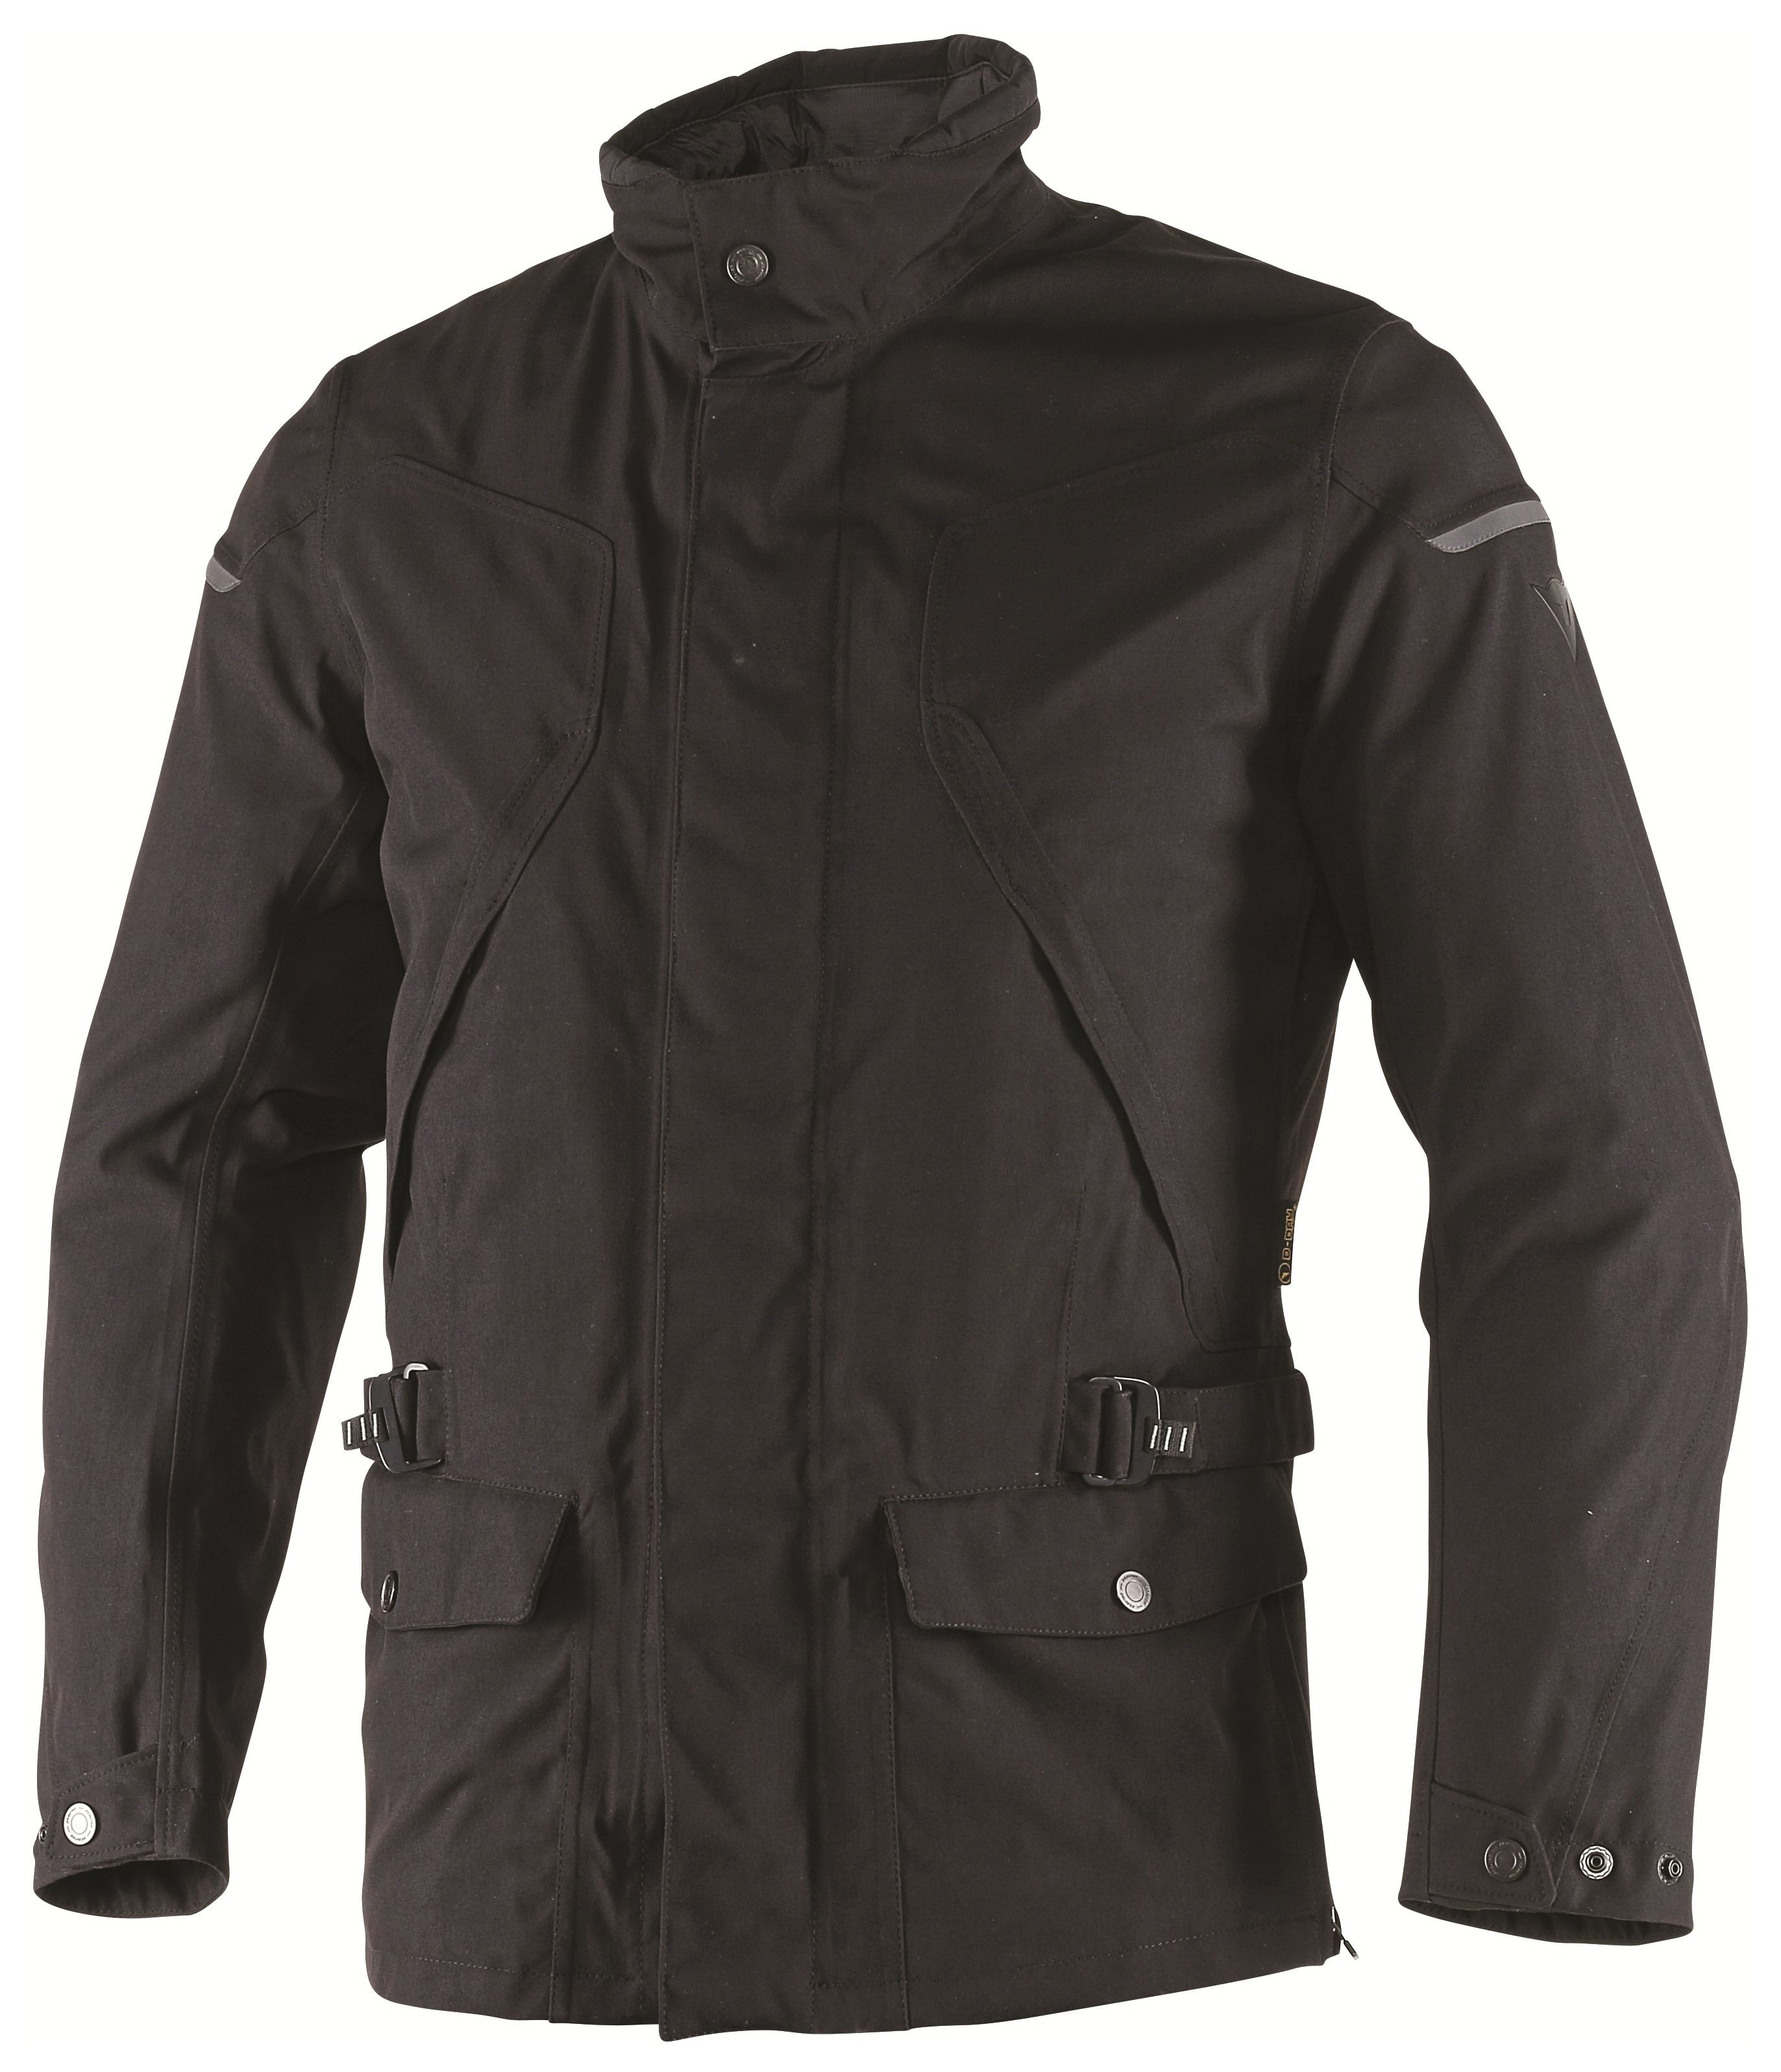 Dainese knightsbridge d1 d dry jacket revzilla for D garage dainese corbeil horaires